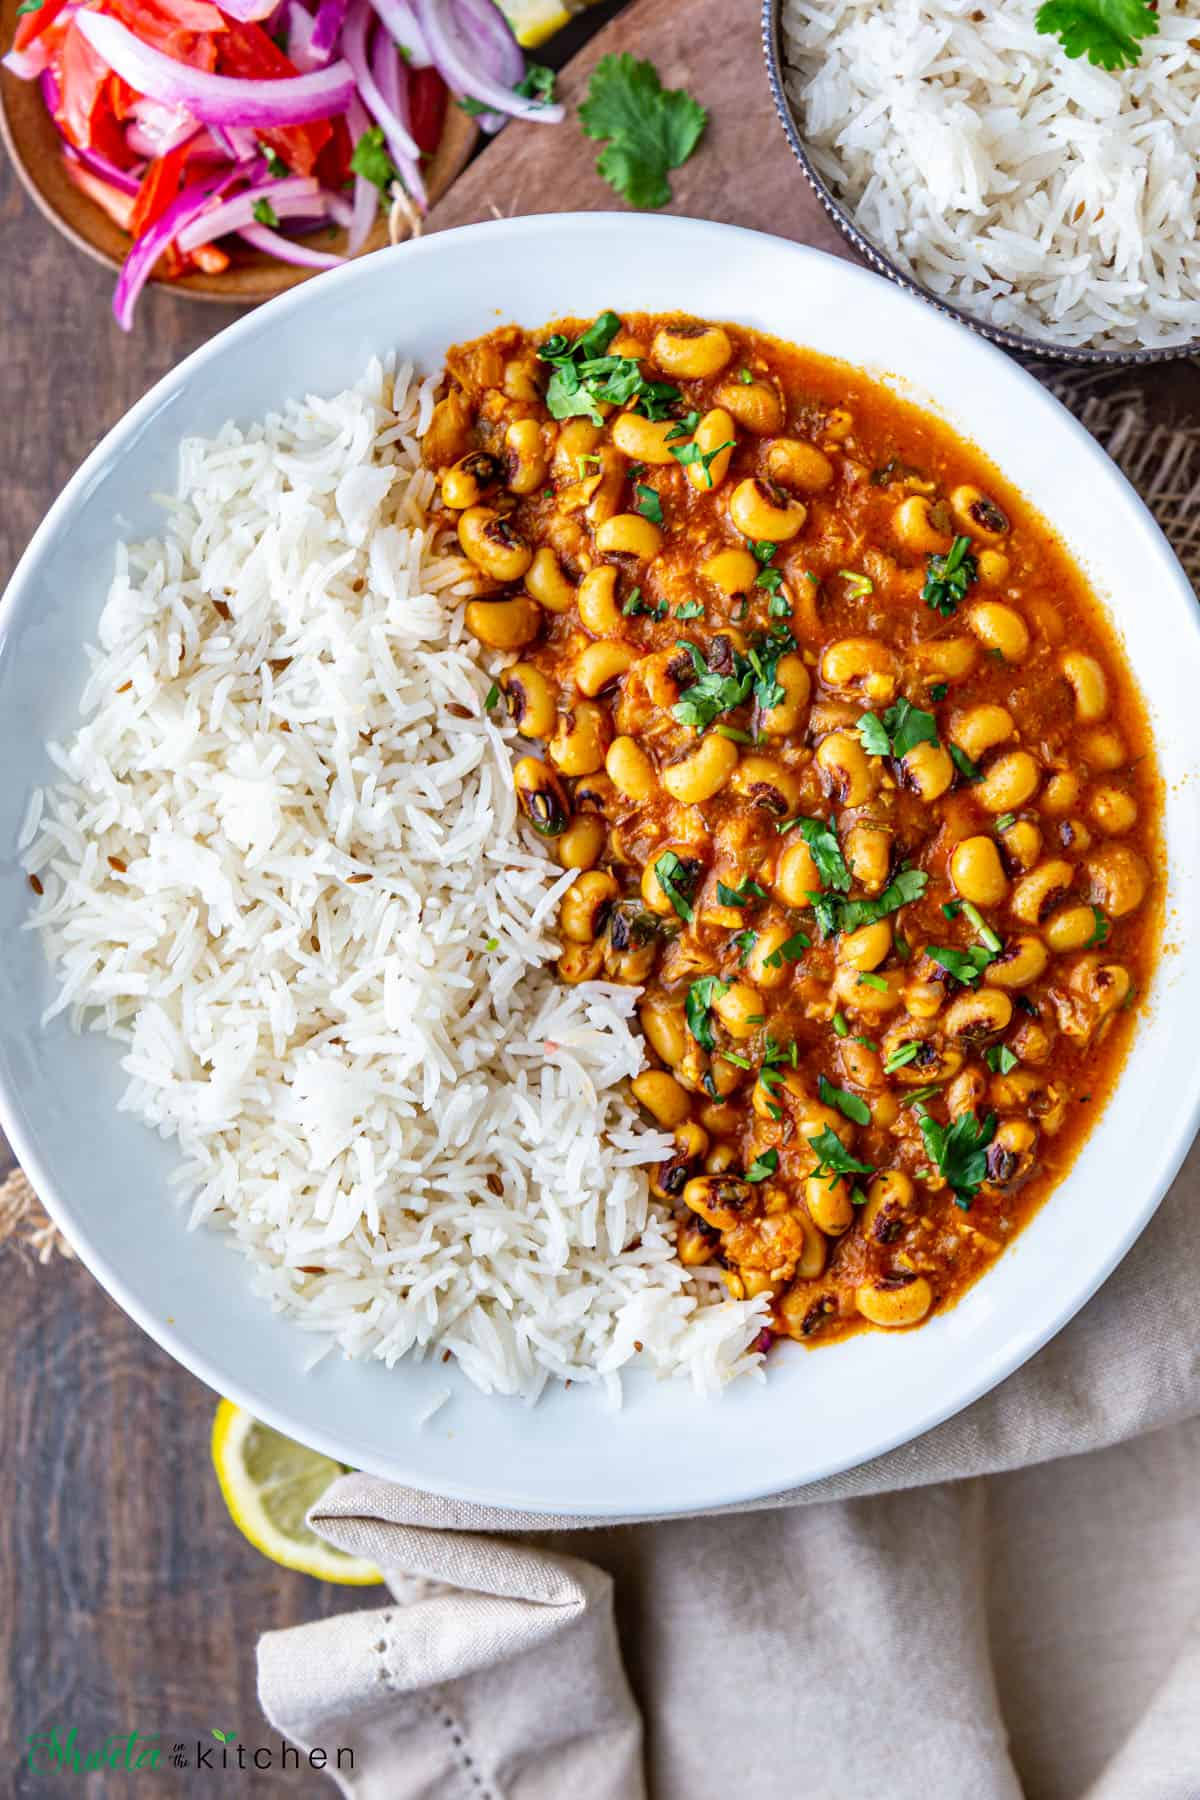 White bowl filled with rice and lobia (black eyed peas) Curry